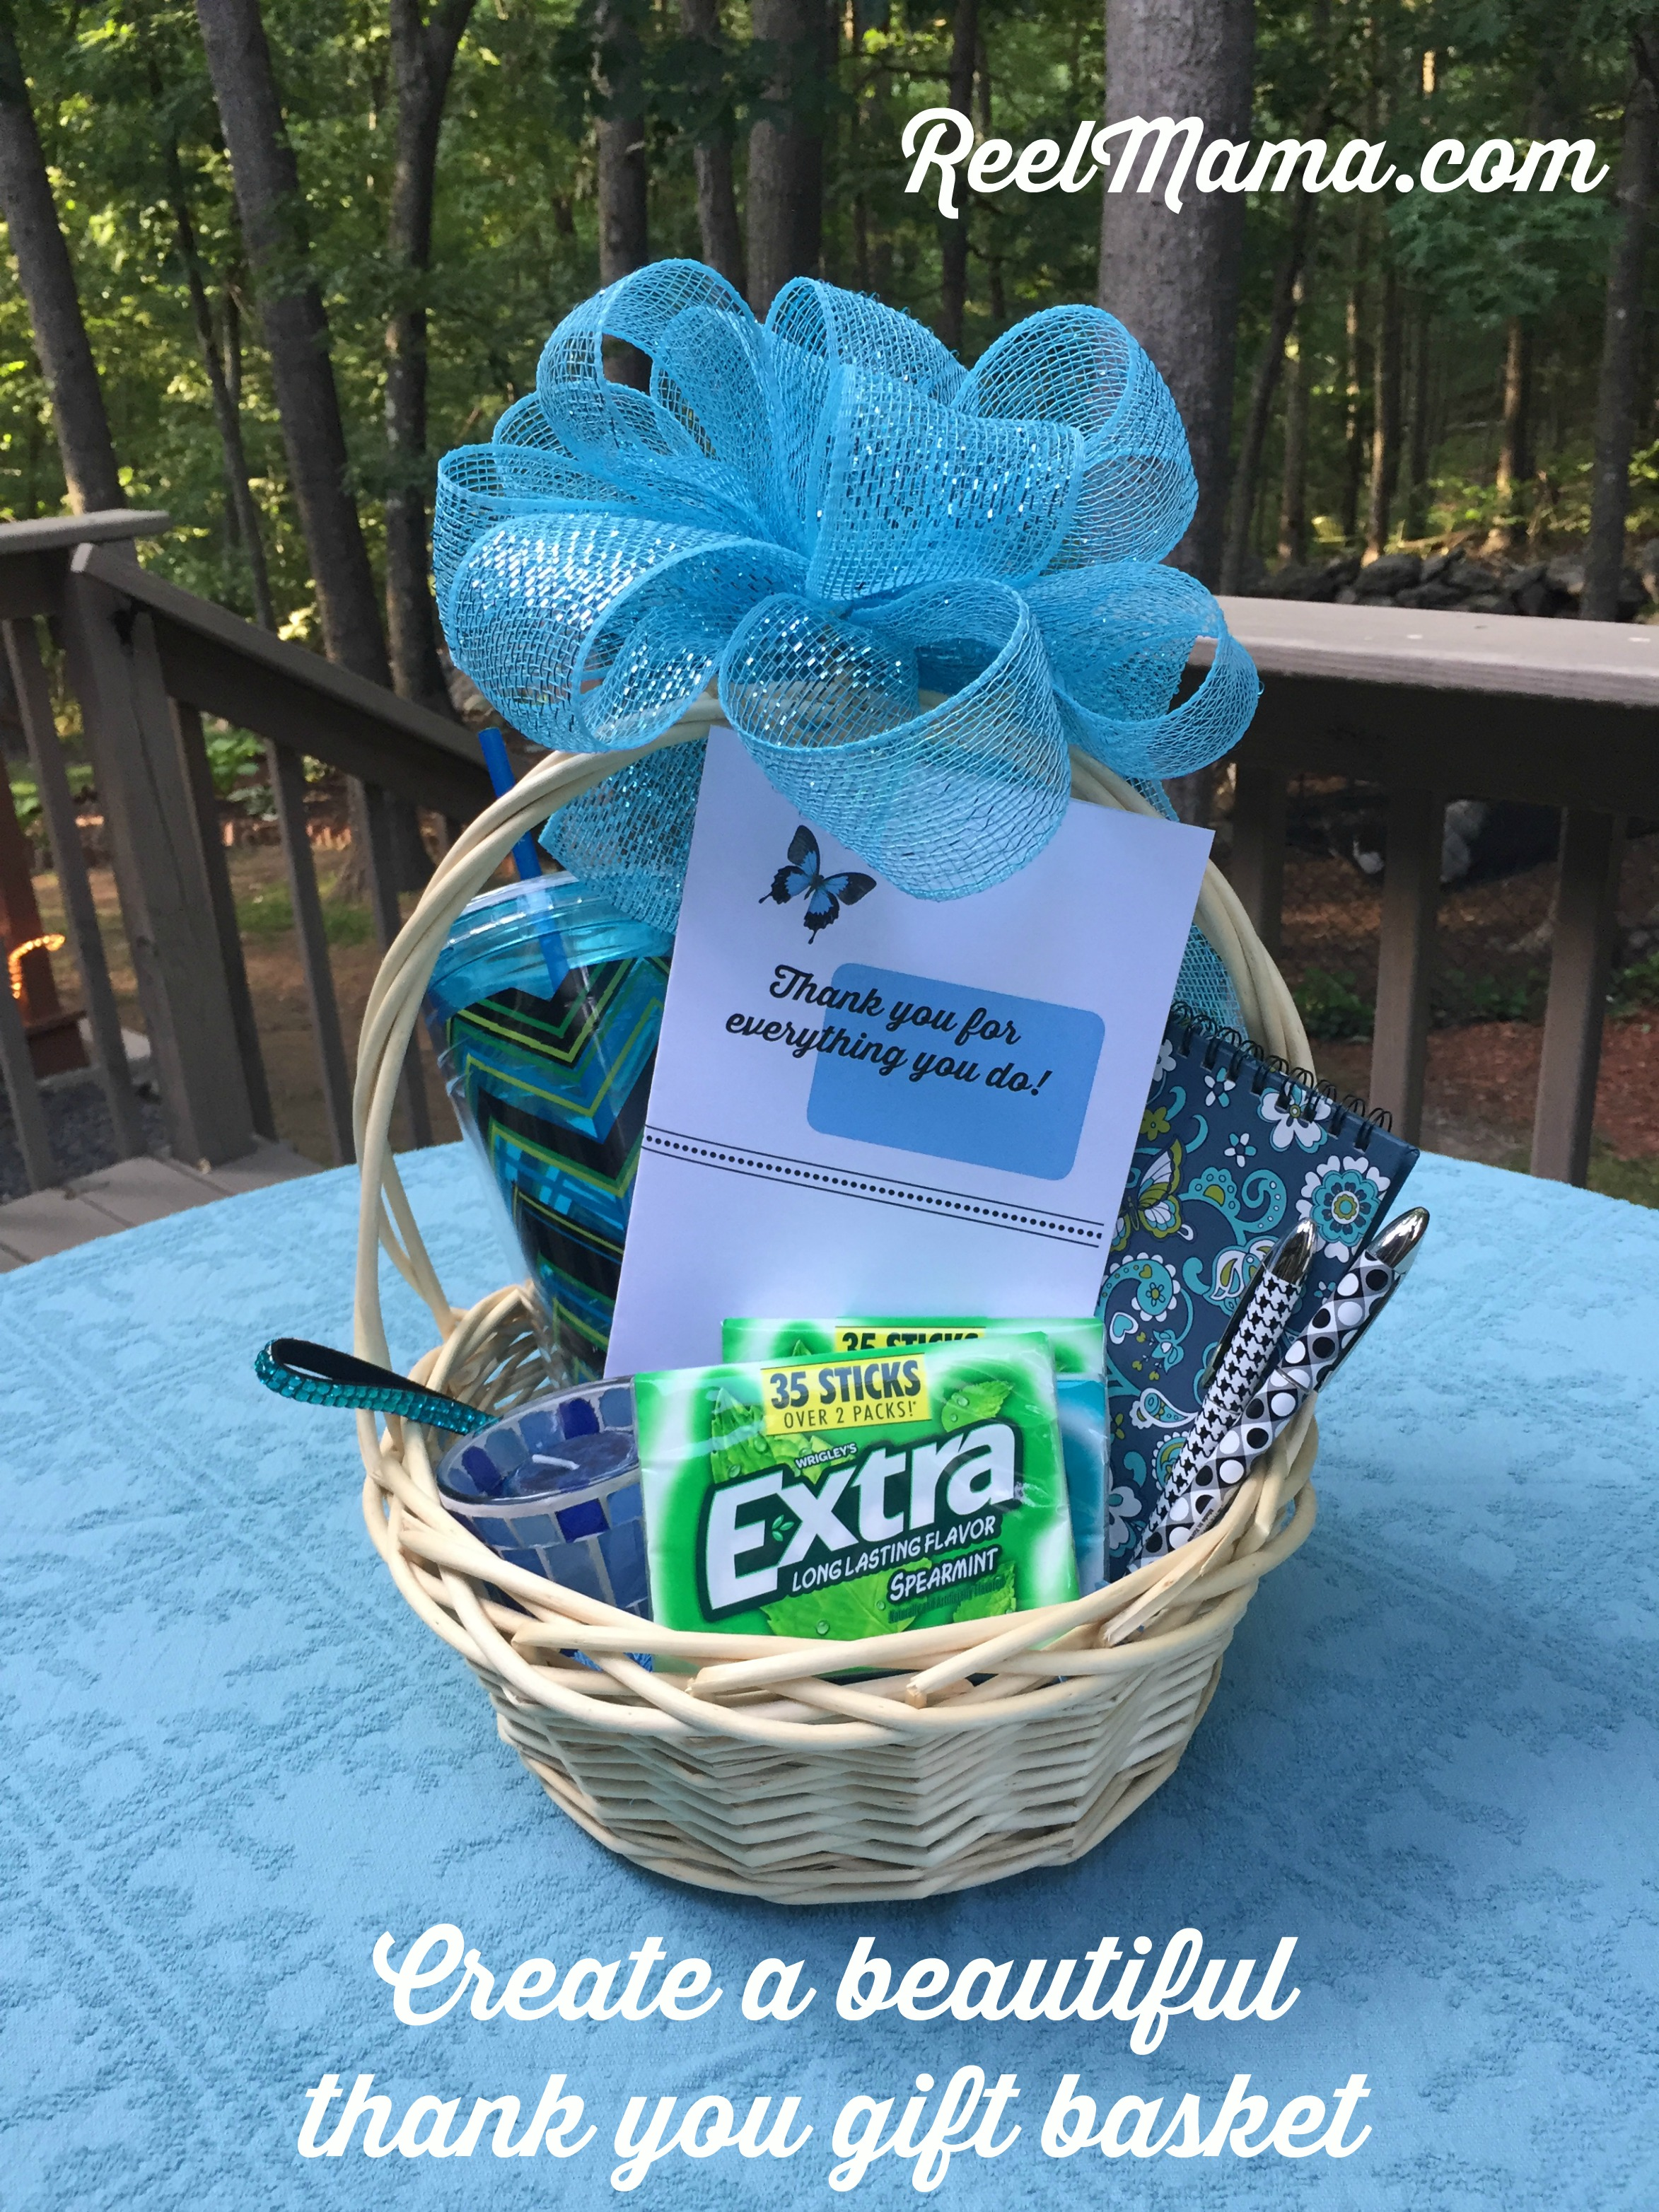 thank you gift basket tutorial for a friend or co-worker